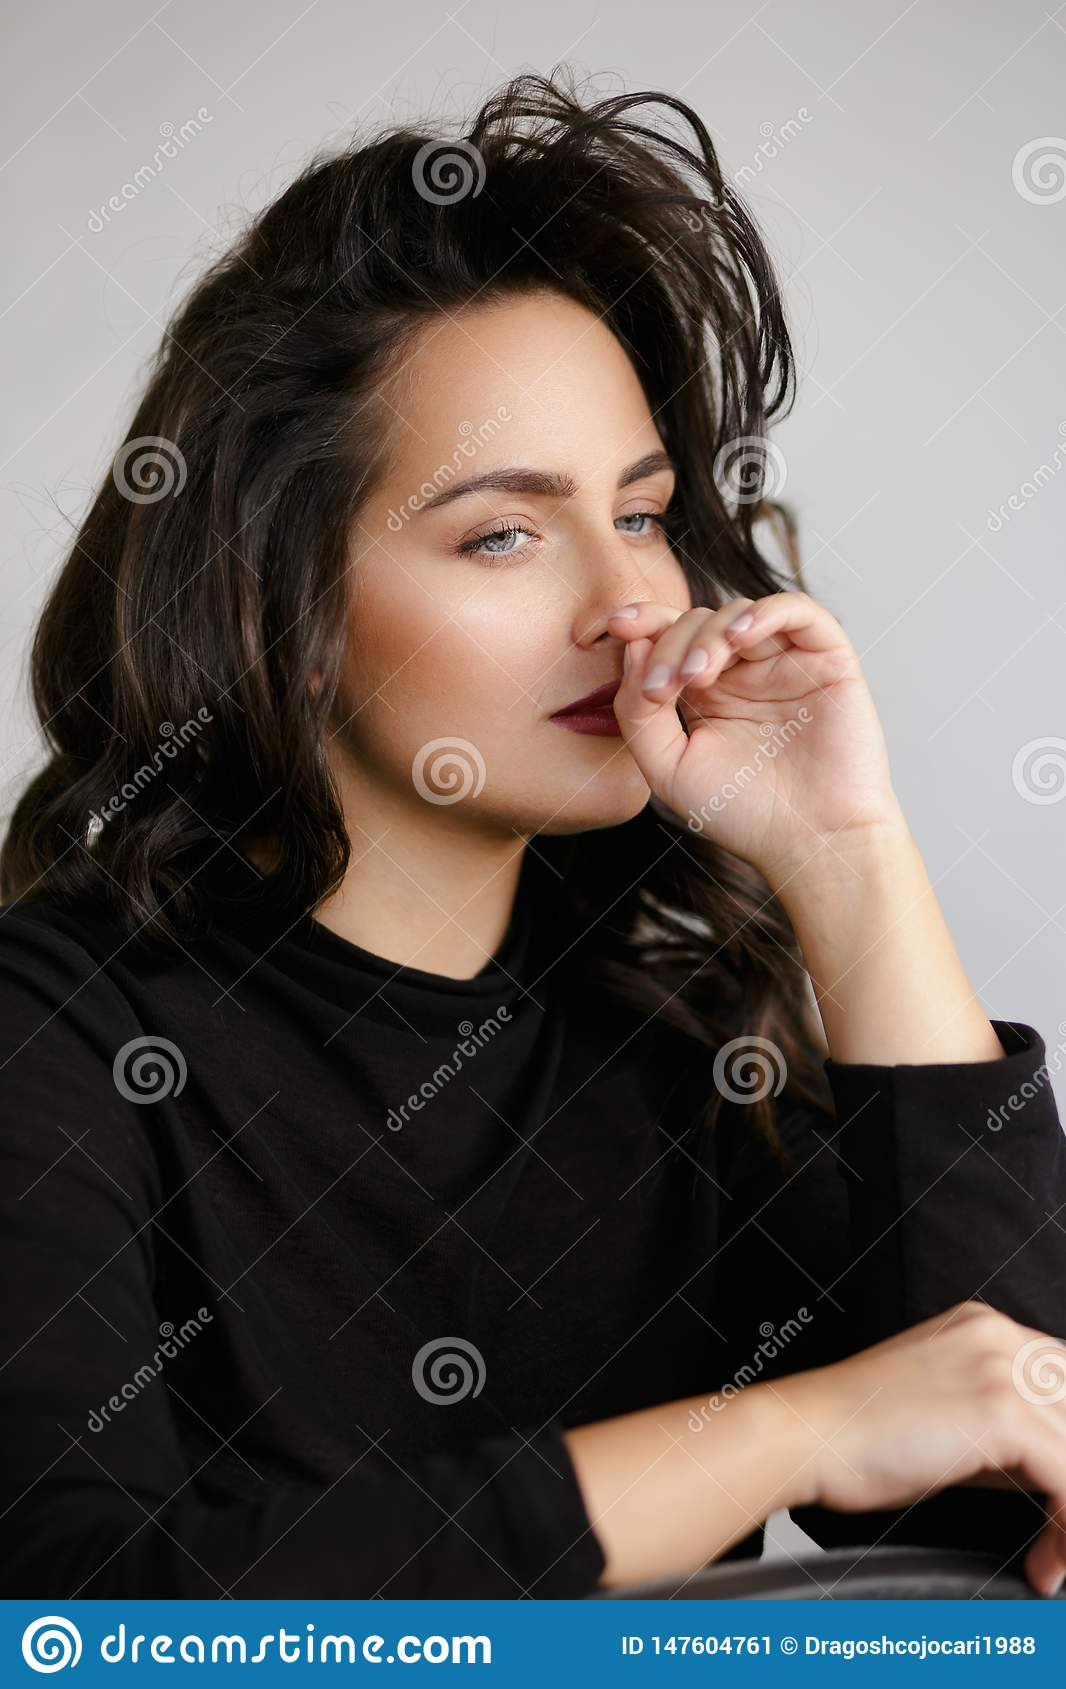 Beauty portrait of a young woman in black, isolated on a white backgorund.